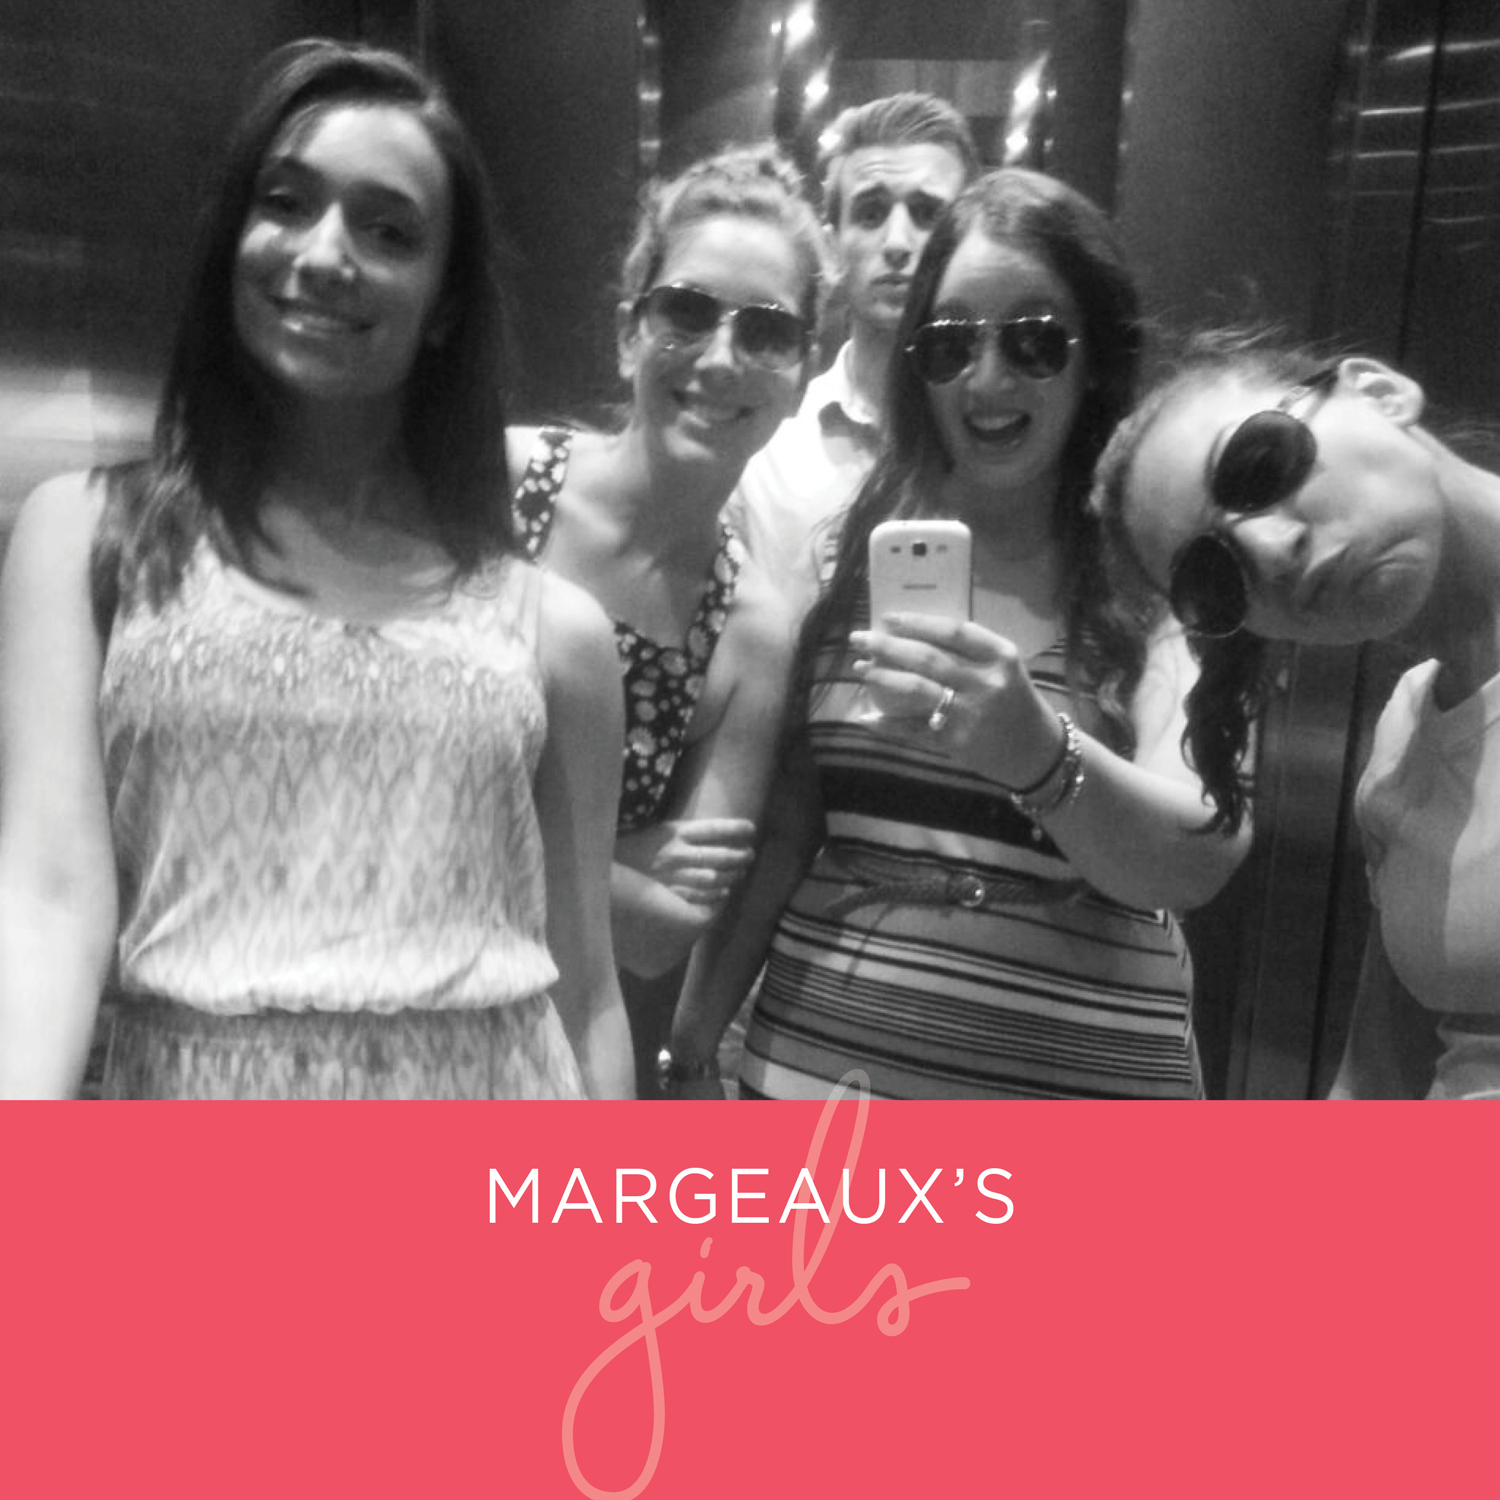 Pearl-Bridal-House-Love-Your-Girls-Margeaux-.jpg